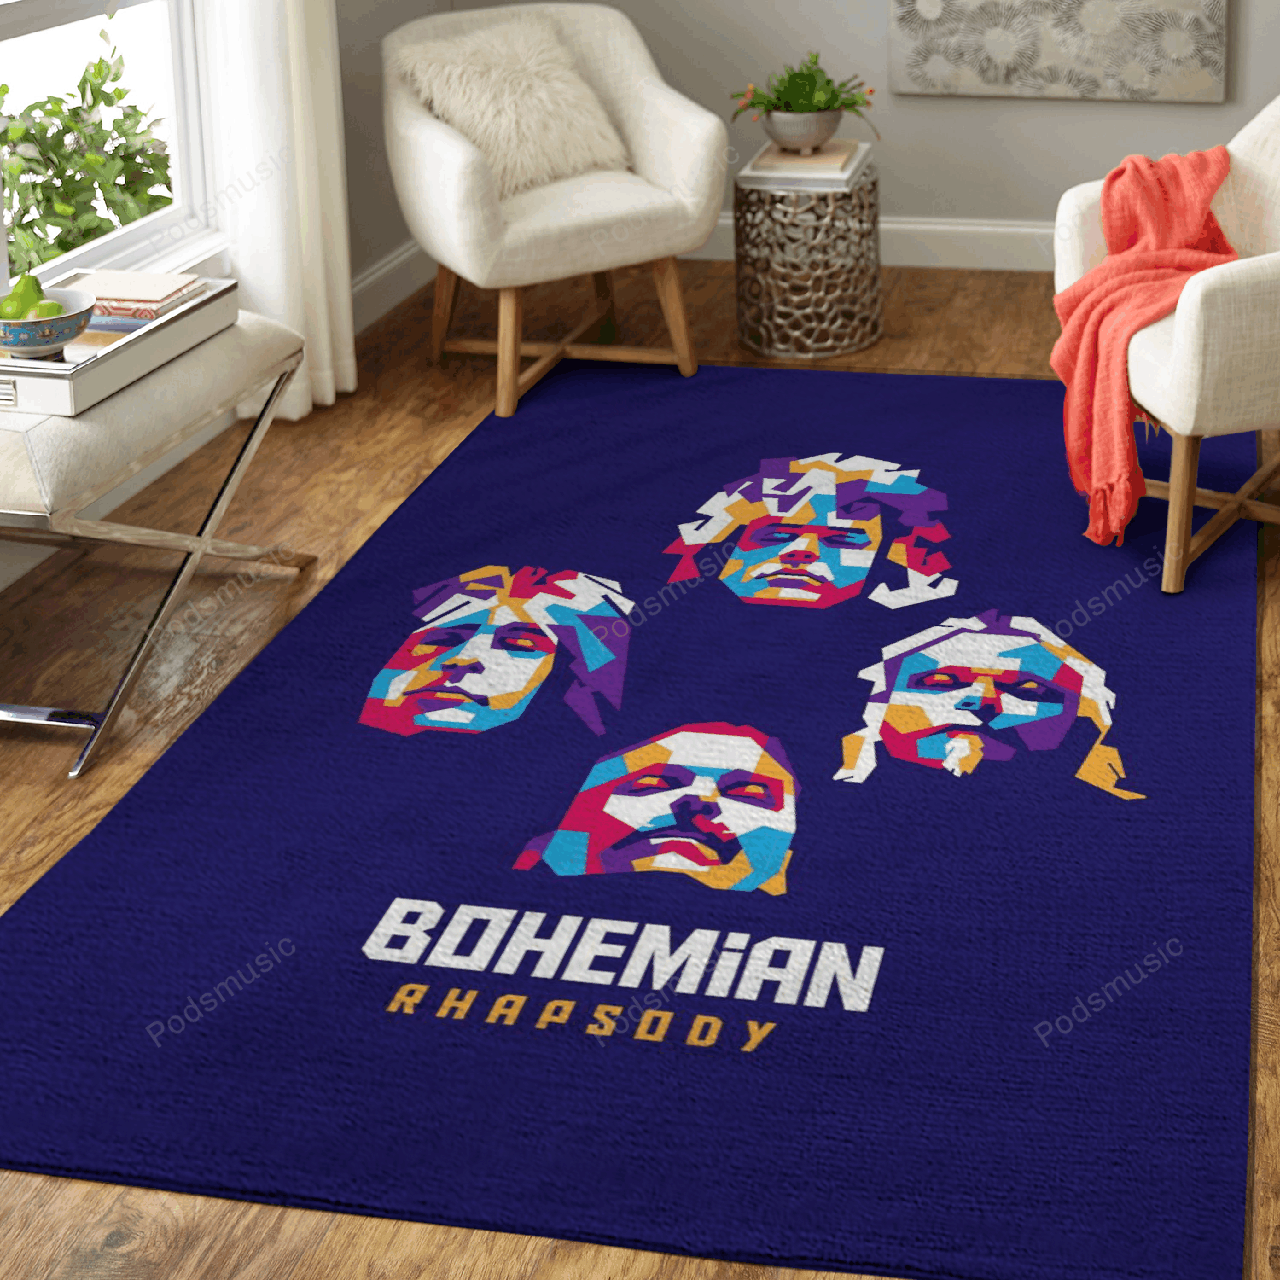 Queen Bohemian Rhapsody  - Music Art For Fans Area Rug Living Room Carpet Floor Decor